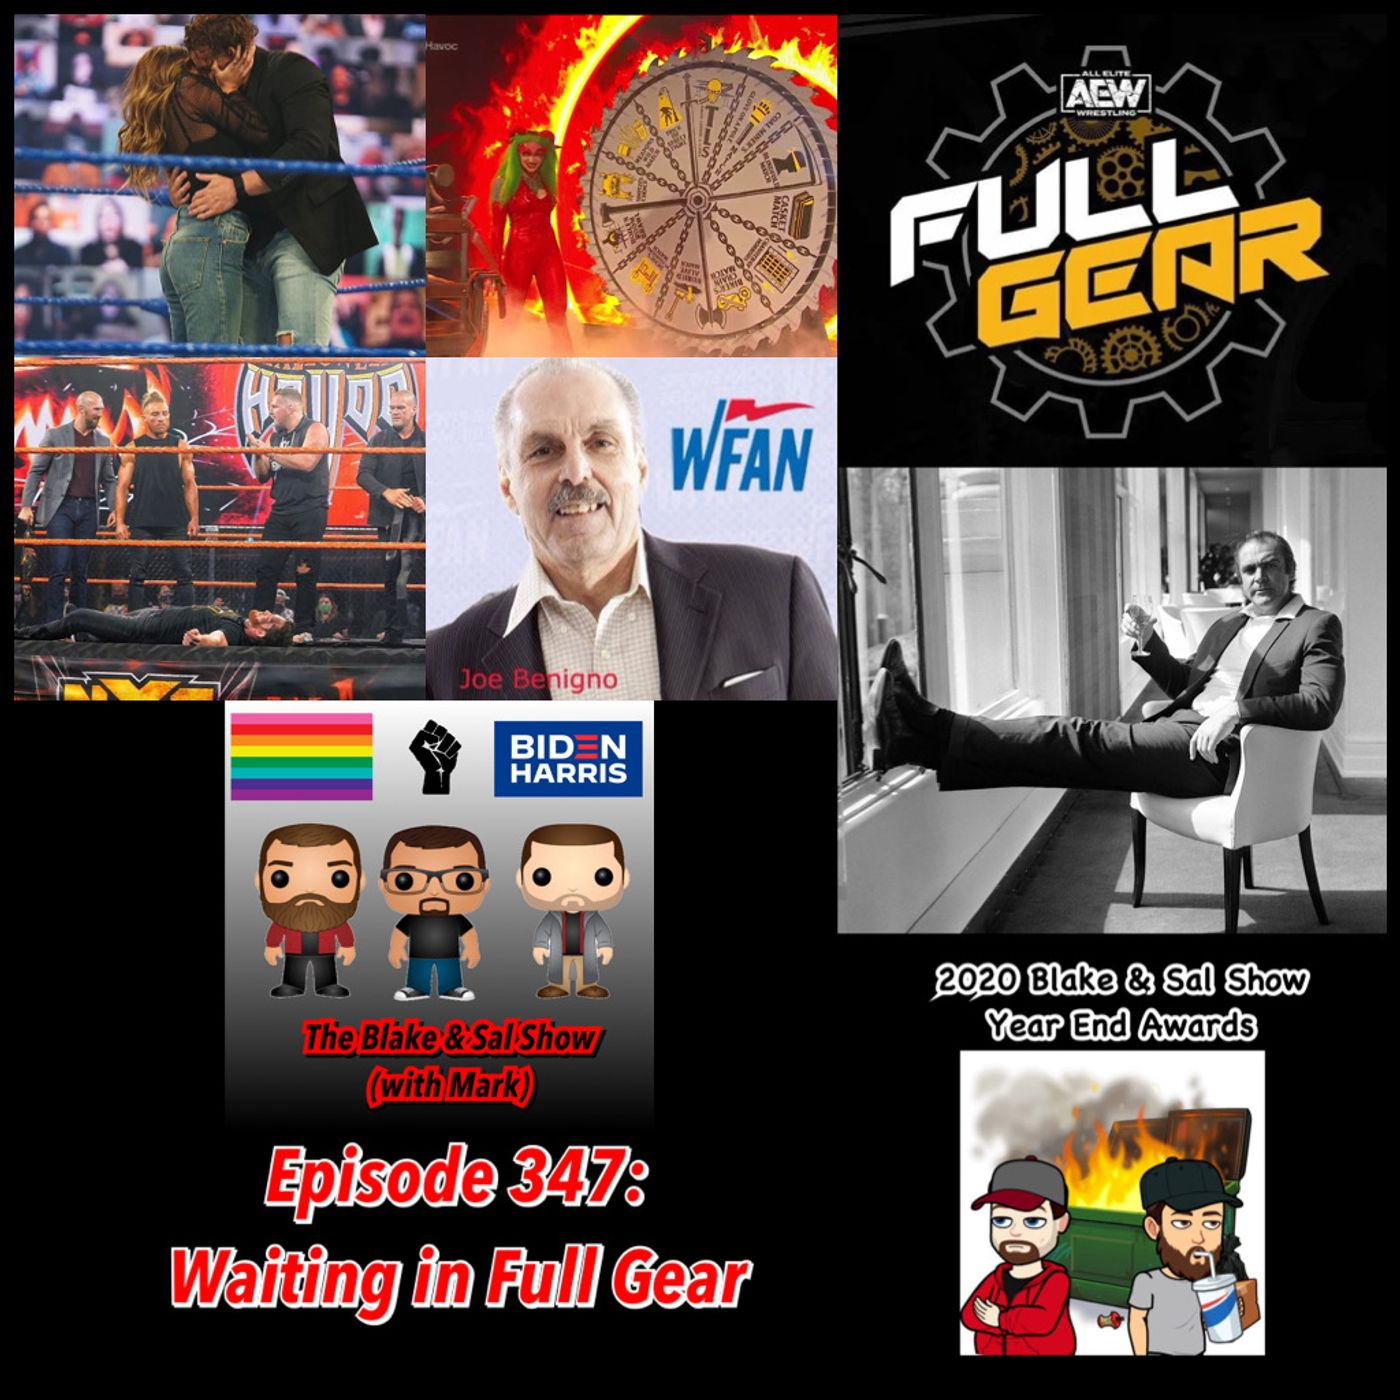 Episode 347: Waiting in Full Gear (featuring the AEW Cody Rhodes Media Call)